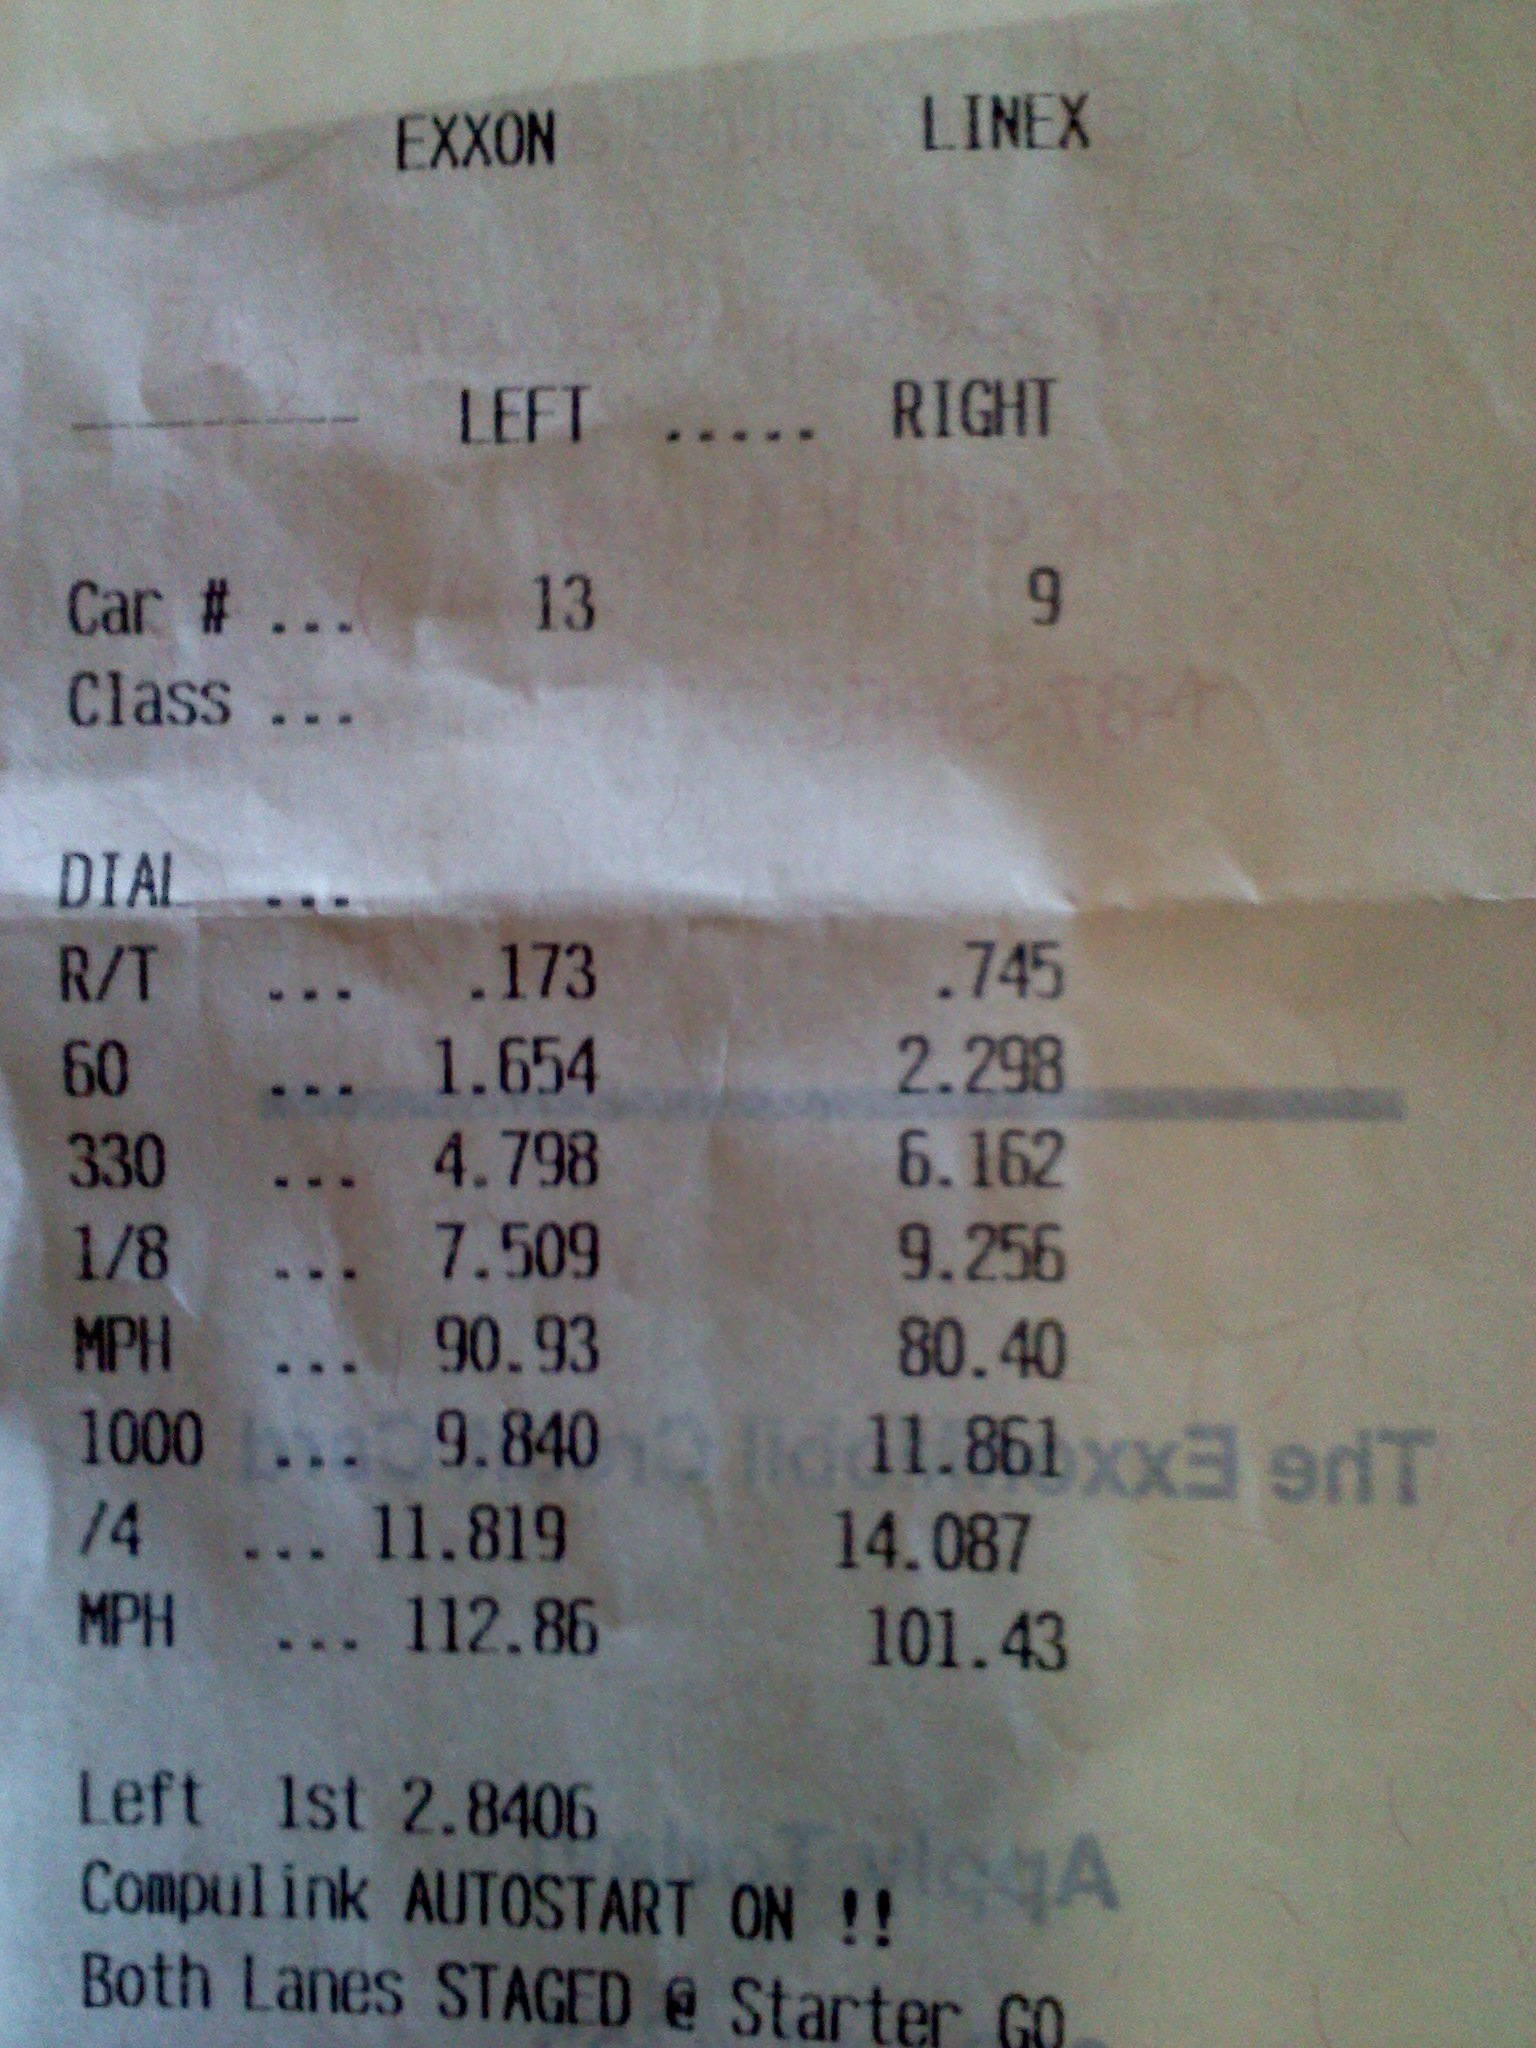 Ford Mustang Timeslip Scan